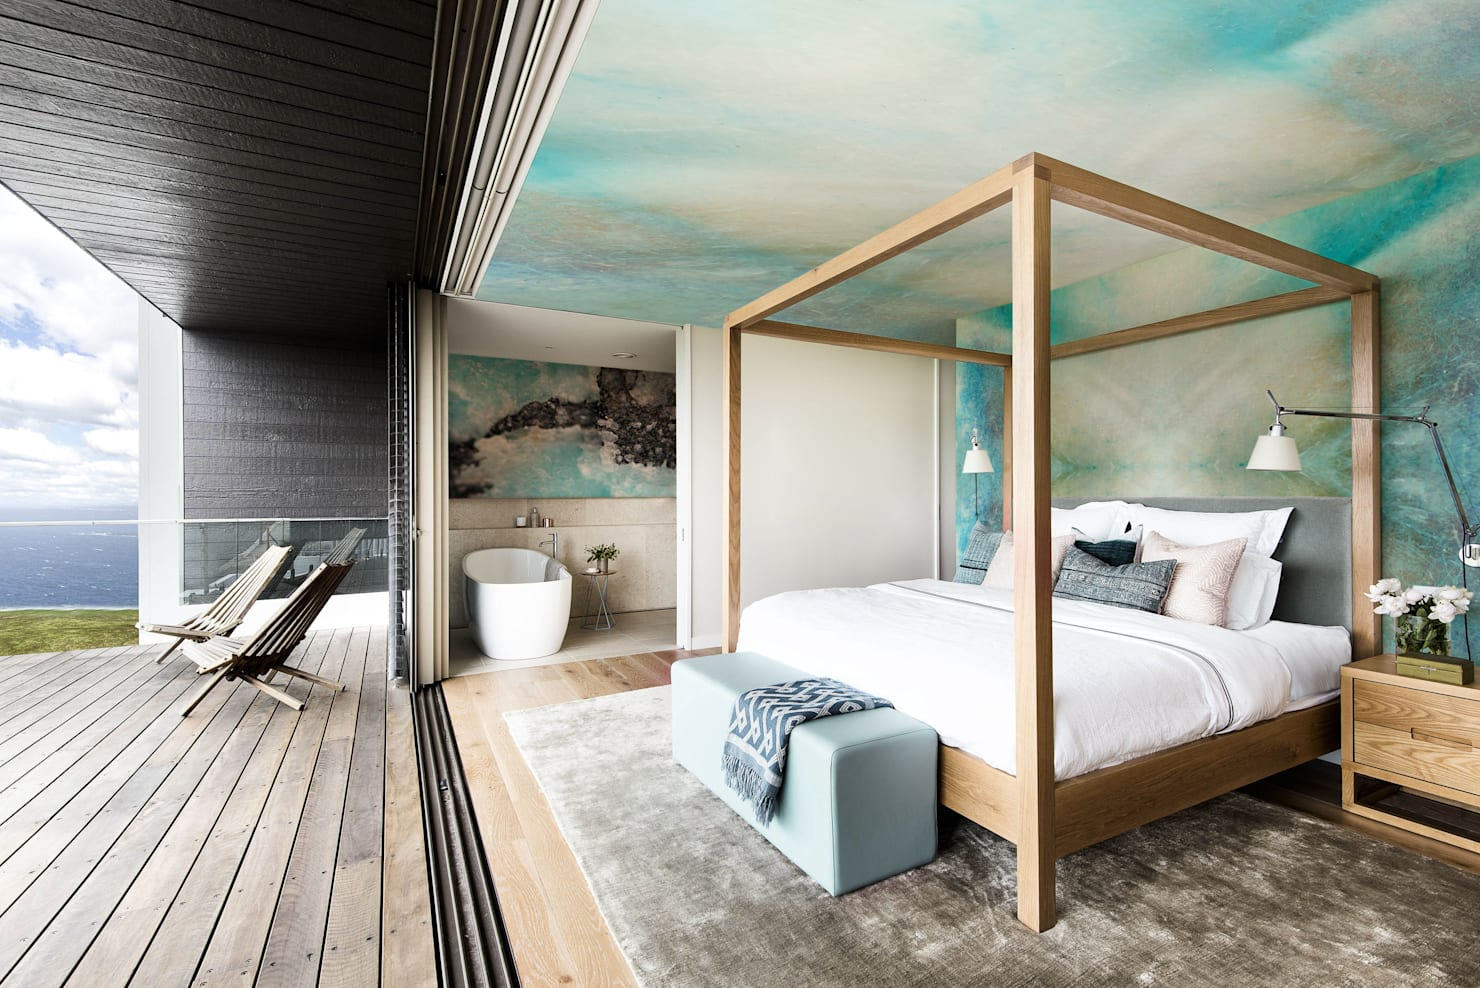 Unique bedrooms that are wasted on sleeping!